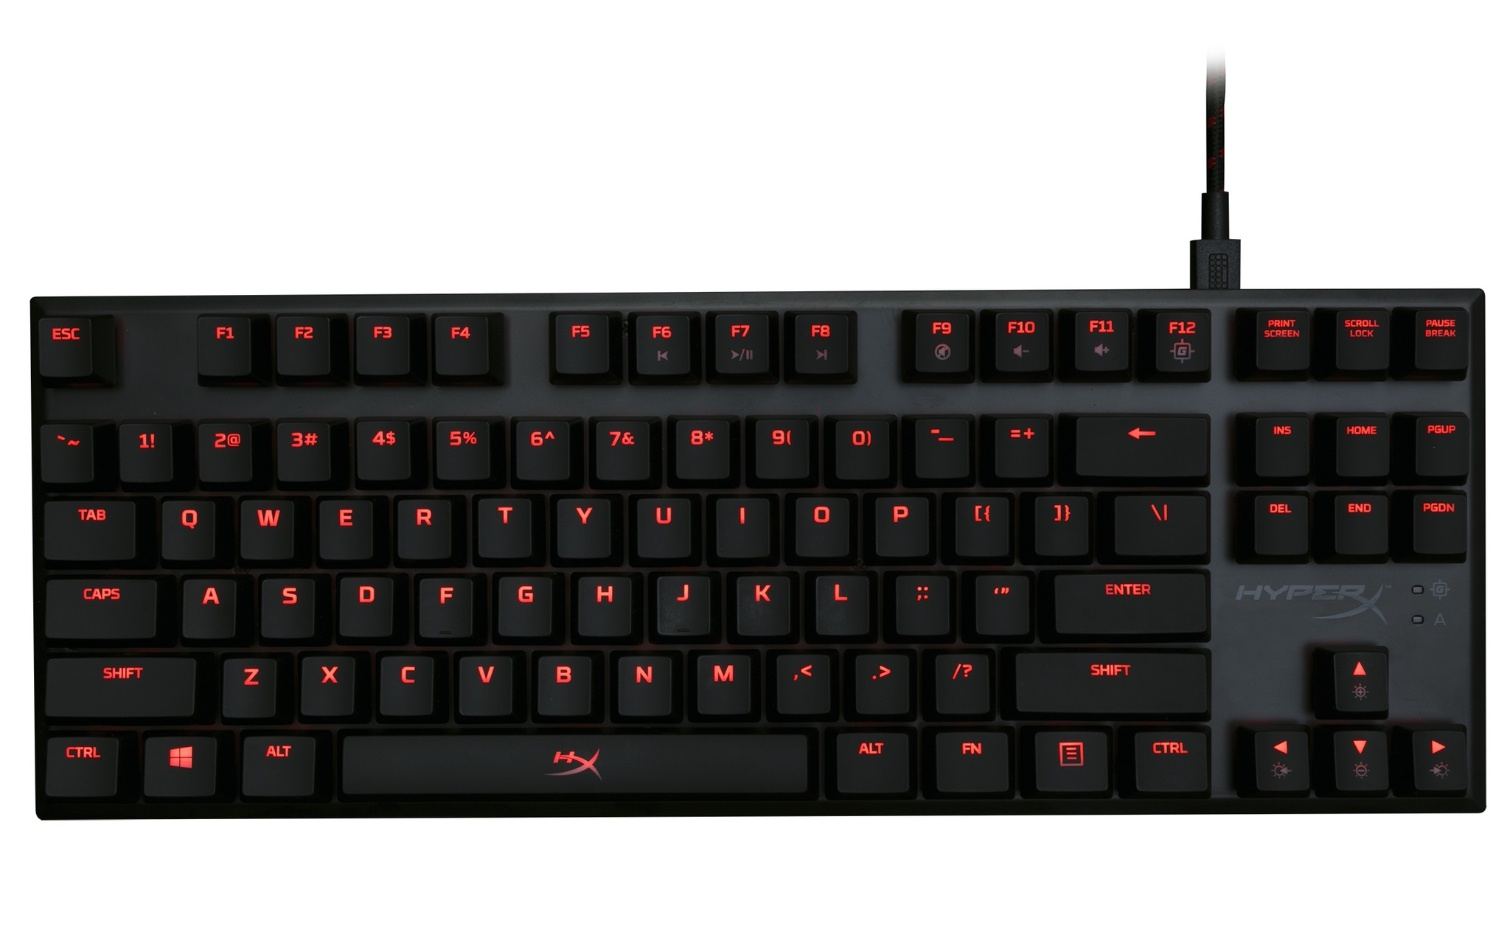 HyperX Alloy FPS Pro (Cherry MX Red) Black USB